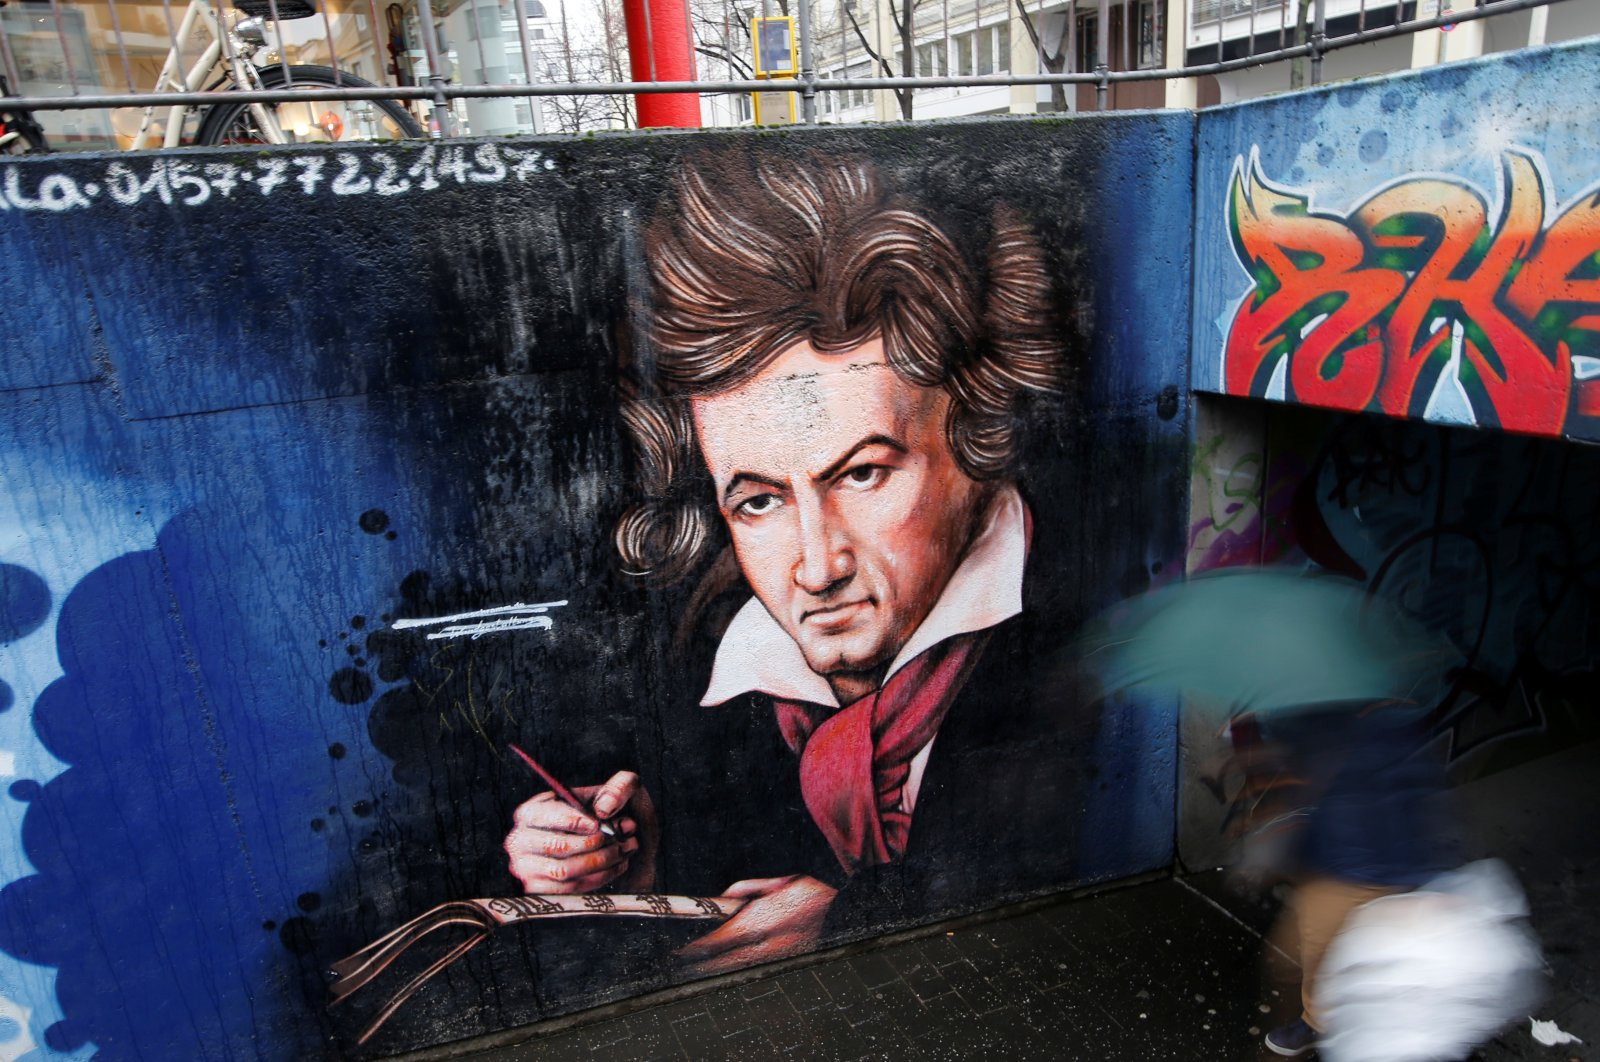 A mural of Ludwig van Beethoven is seen at a pedestrian tunnel in Bonn, Germany December 13, 2019. (REUTERS PHOTO)